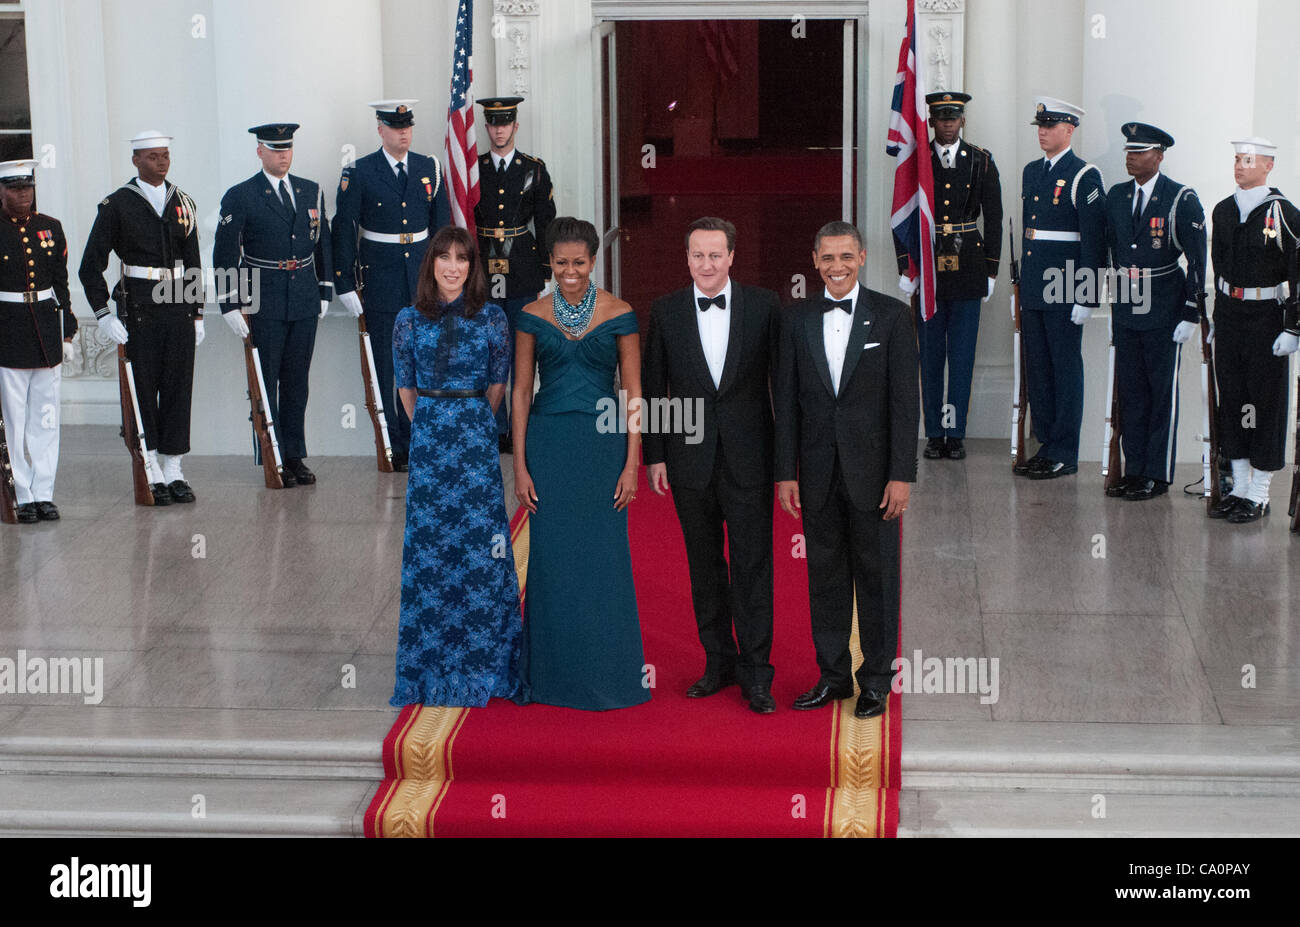 President Barack Obama and First Lady Michelle greet Prime Minister David Cameron and wife Samantha before a black - Stock Image